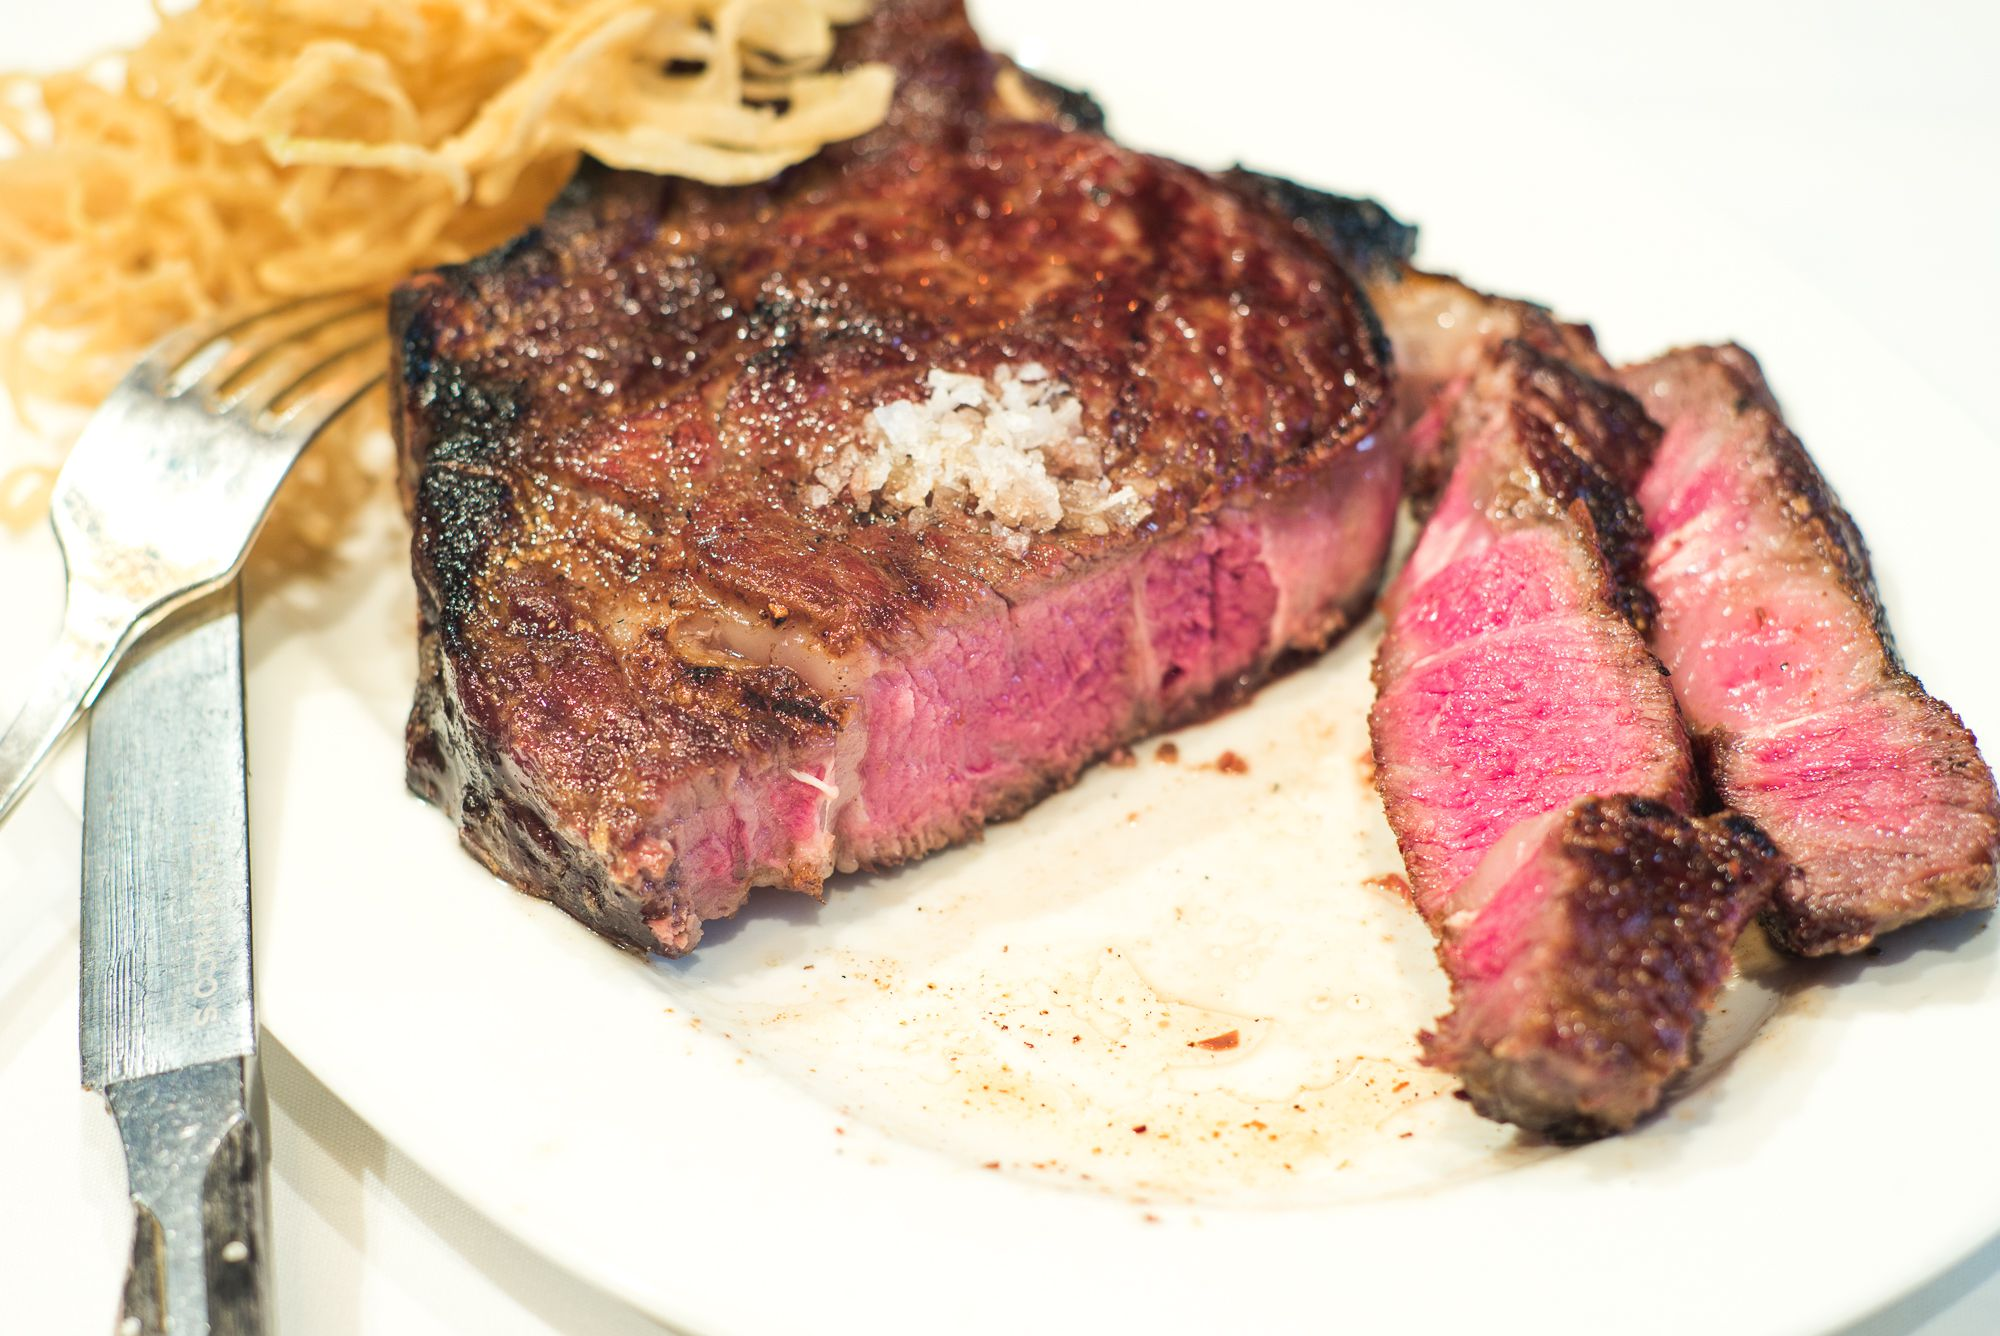 Delmonico steak]